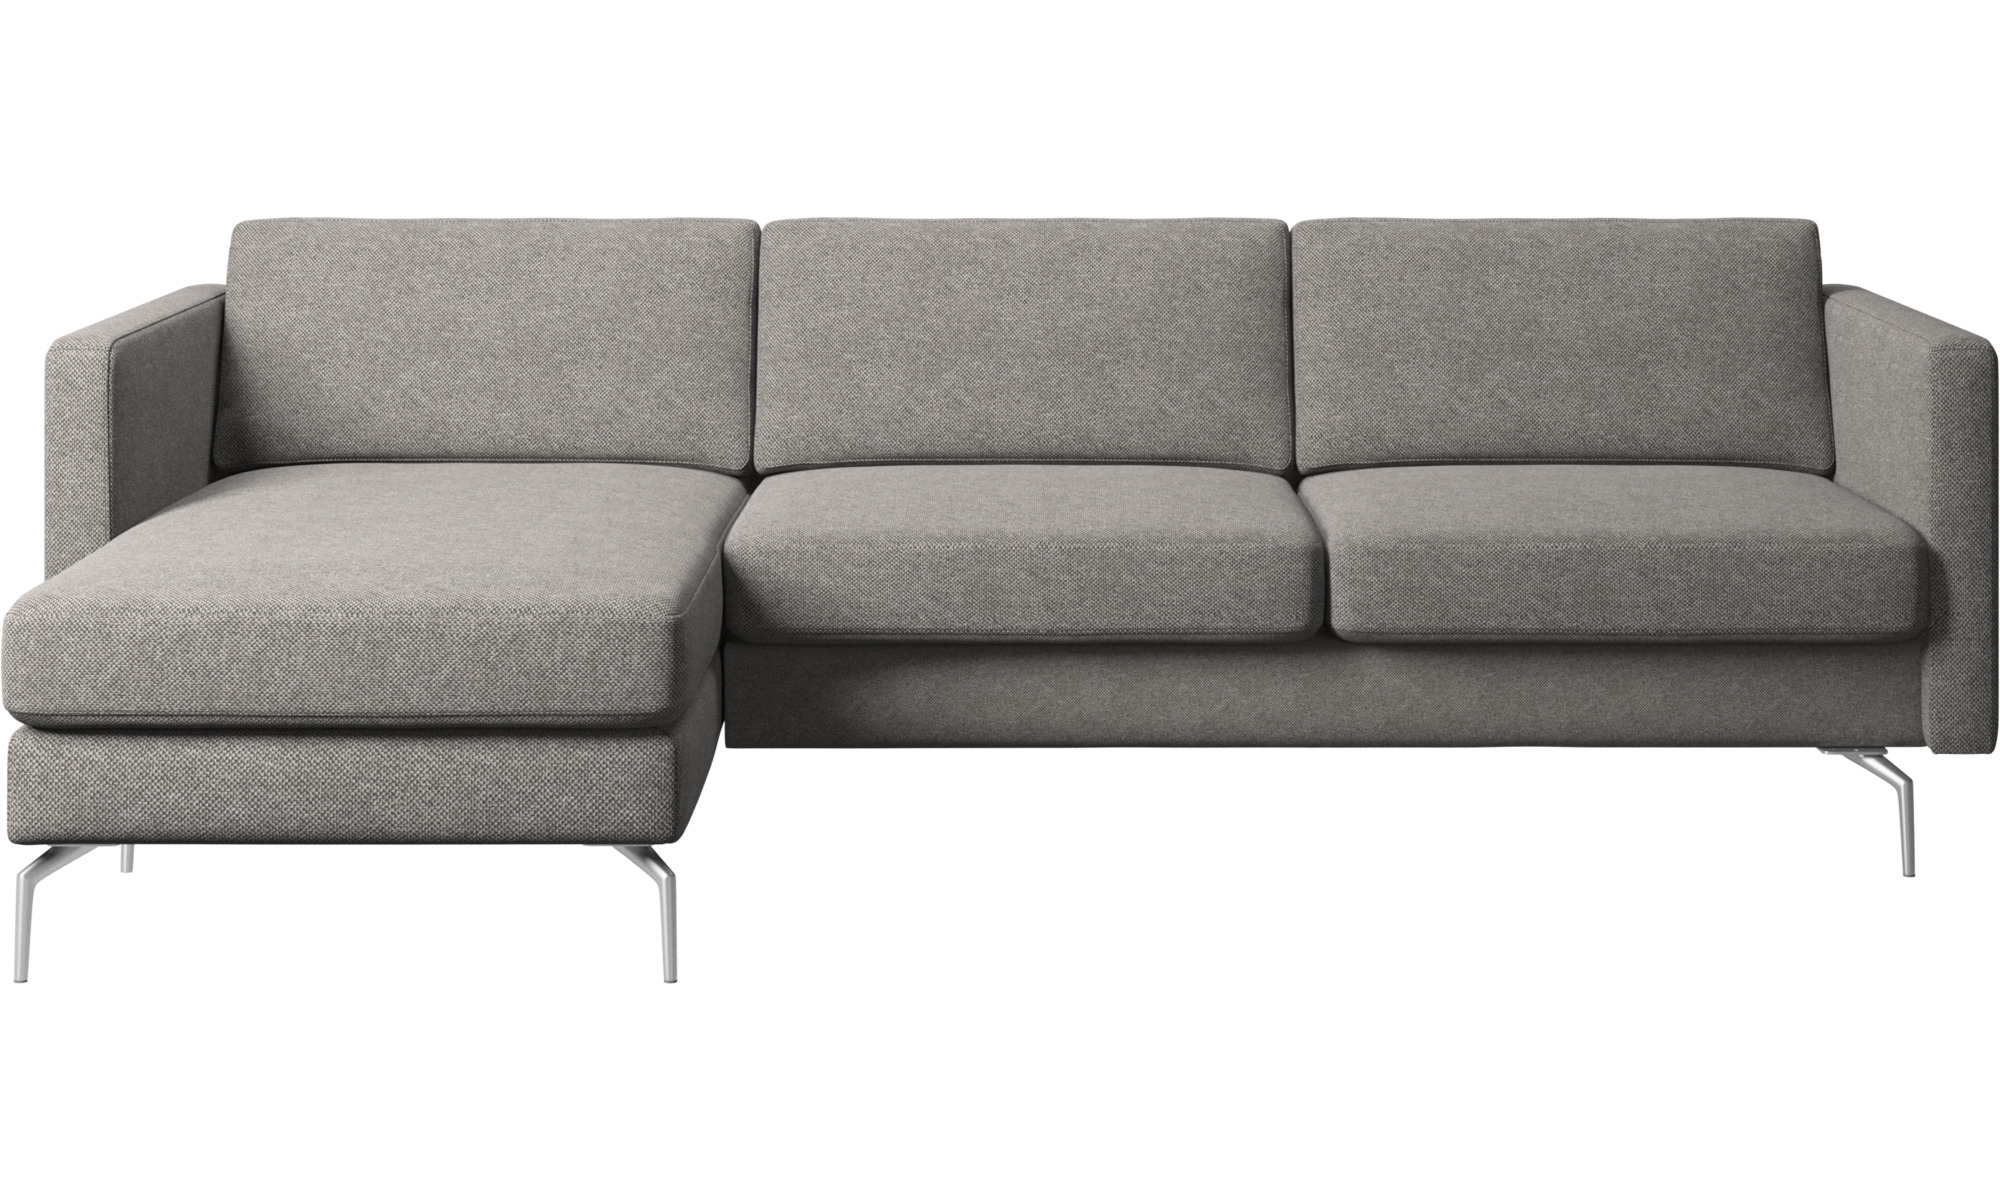 Chaise Longue Sofas Osaka Sofa With